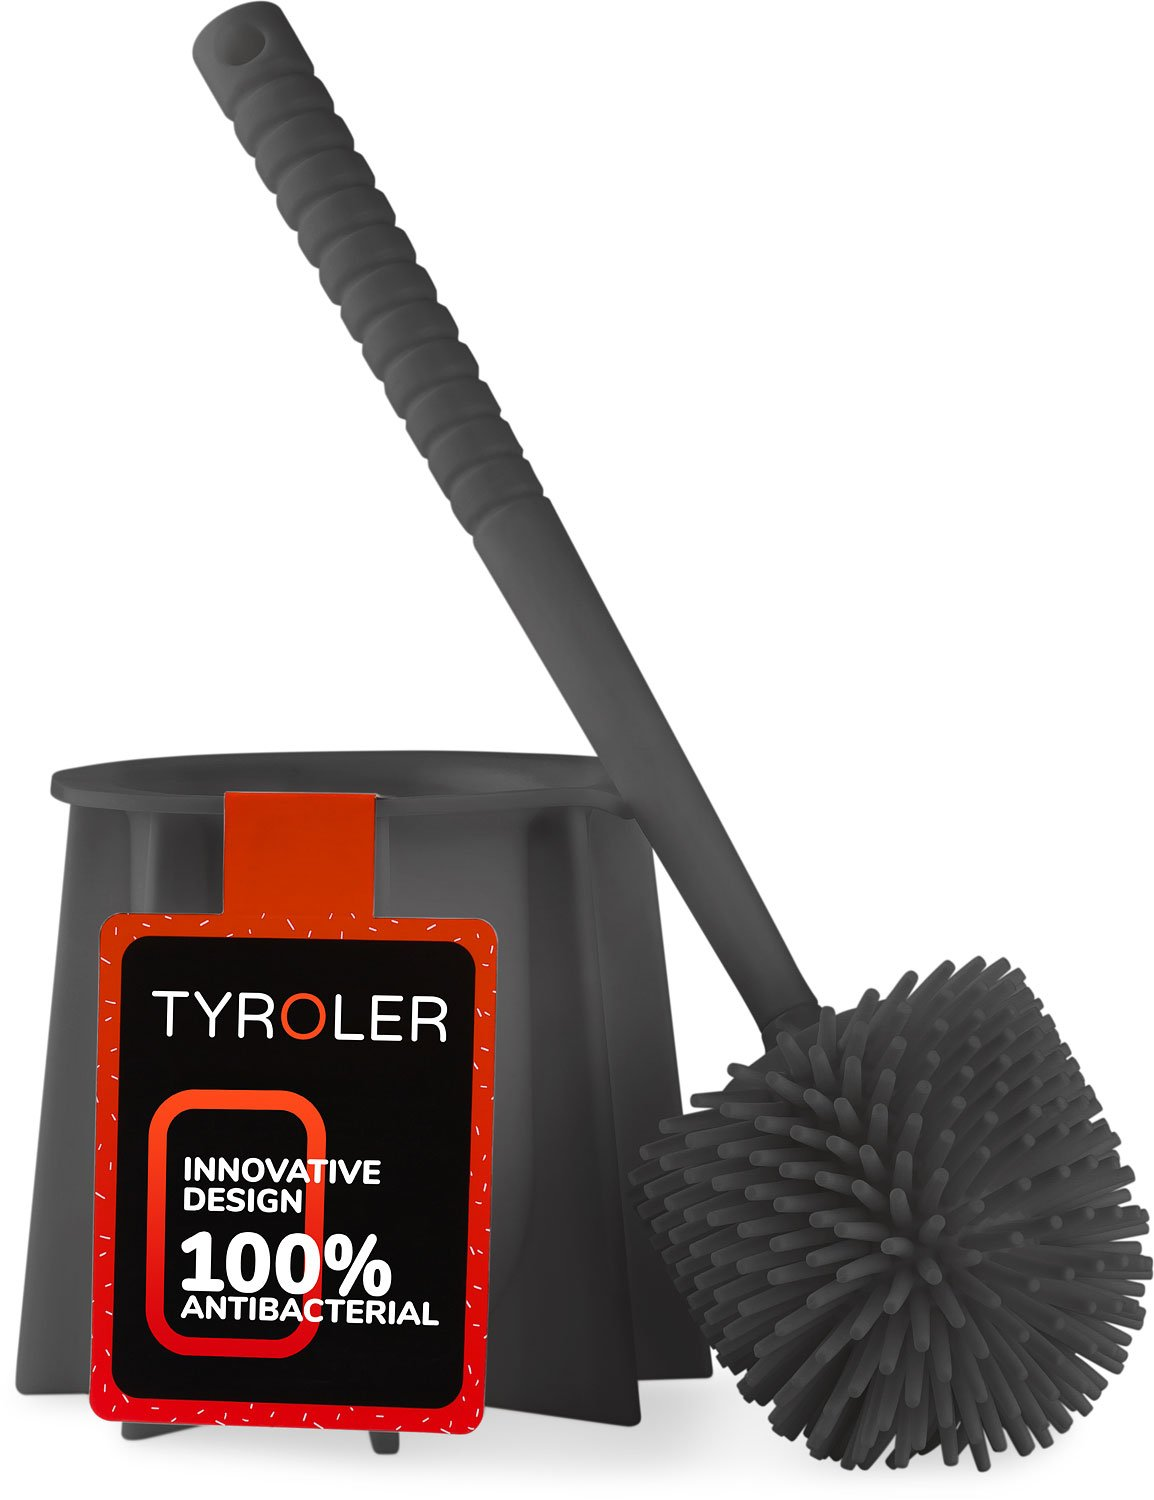 Tyroler Bright Tools Toilet Brush Set,Bathroom Cleaning Toilet Bowl brush and holder Antibacterial White Toilet Brush bowl holder set